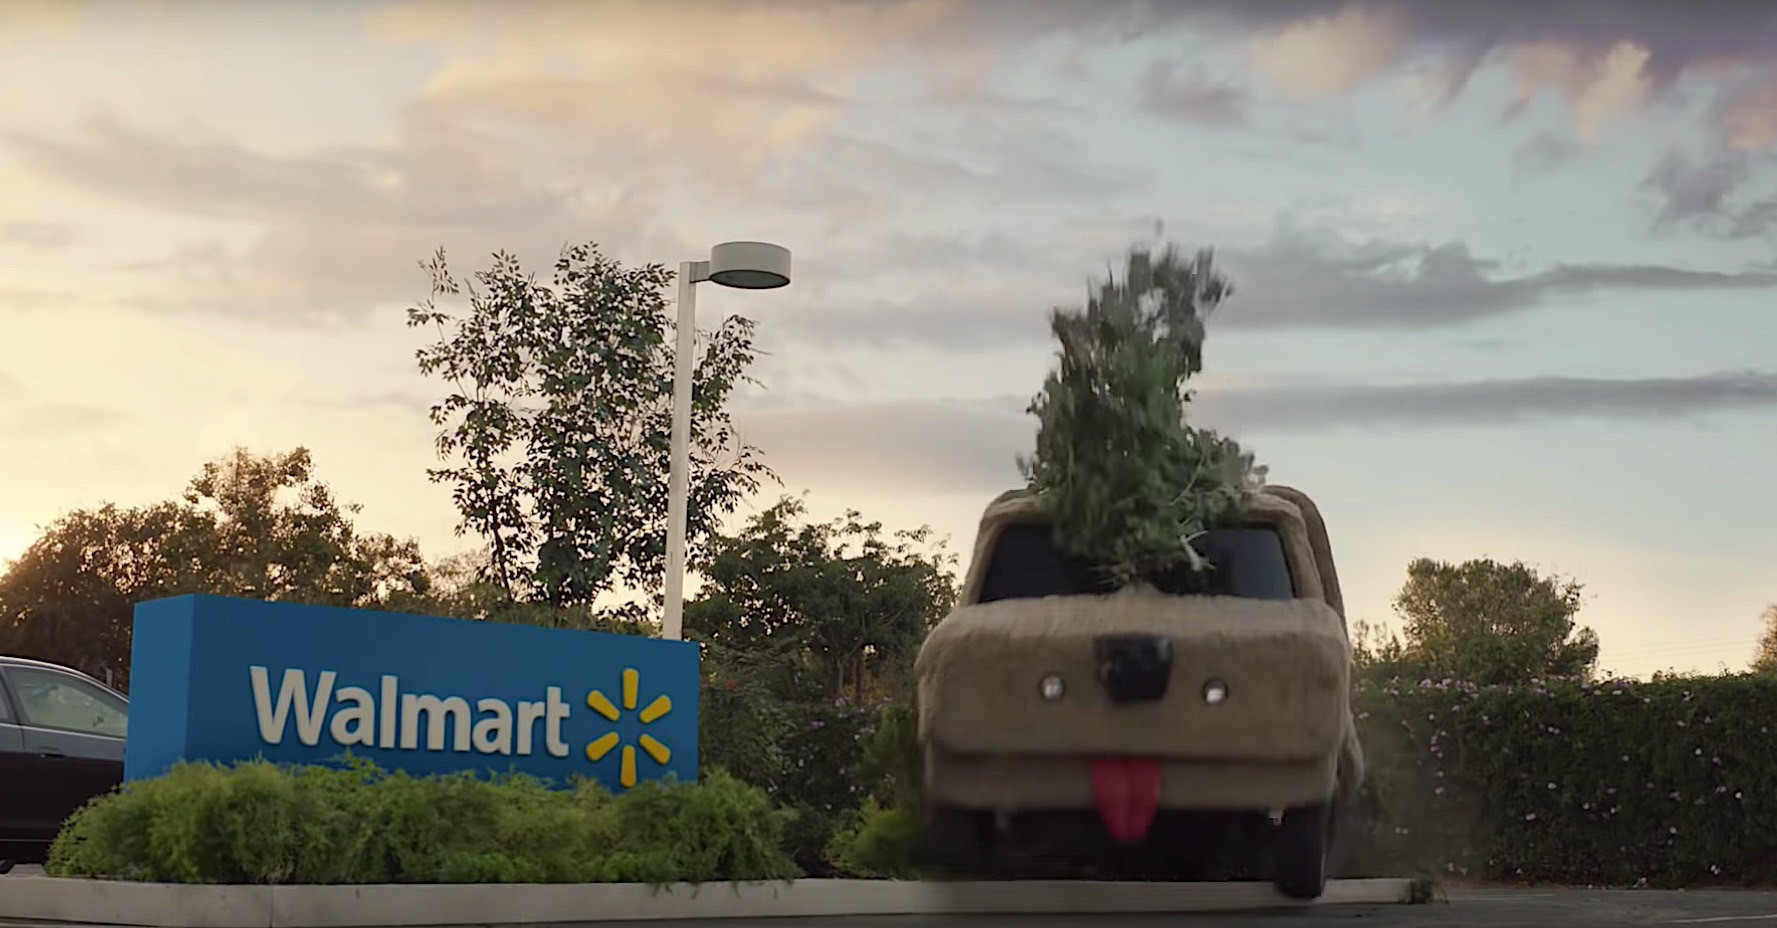 Walmart Summons Movie Cars in All-Star Live Action Ad ...